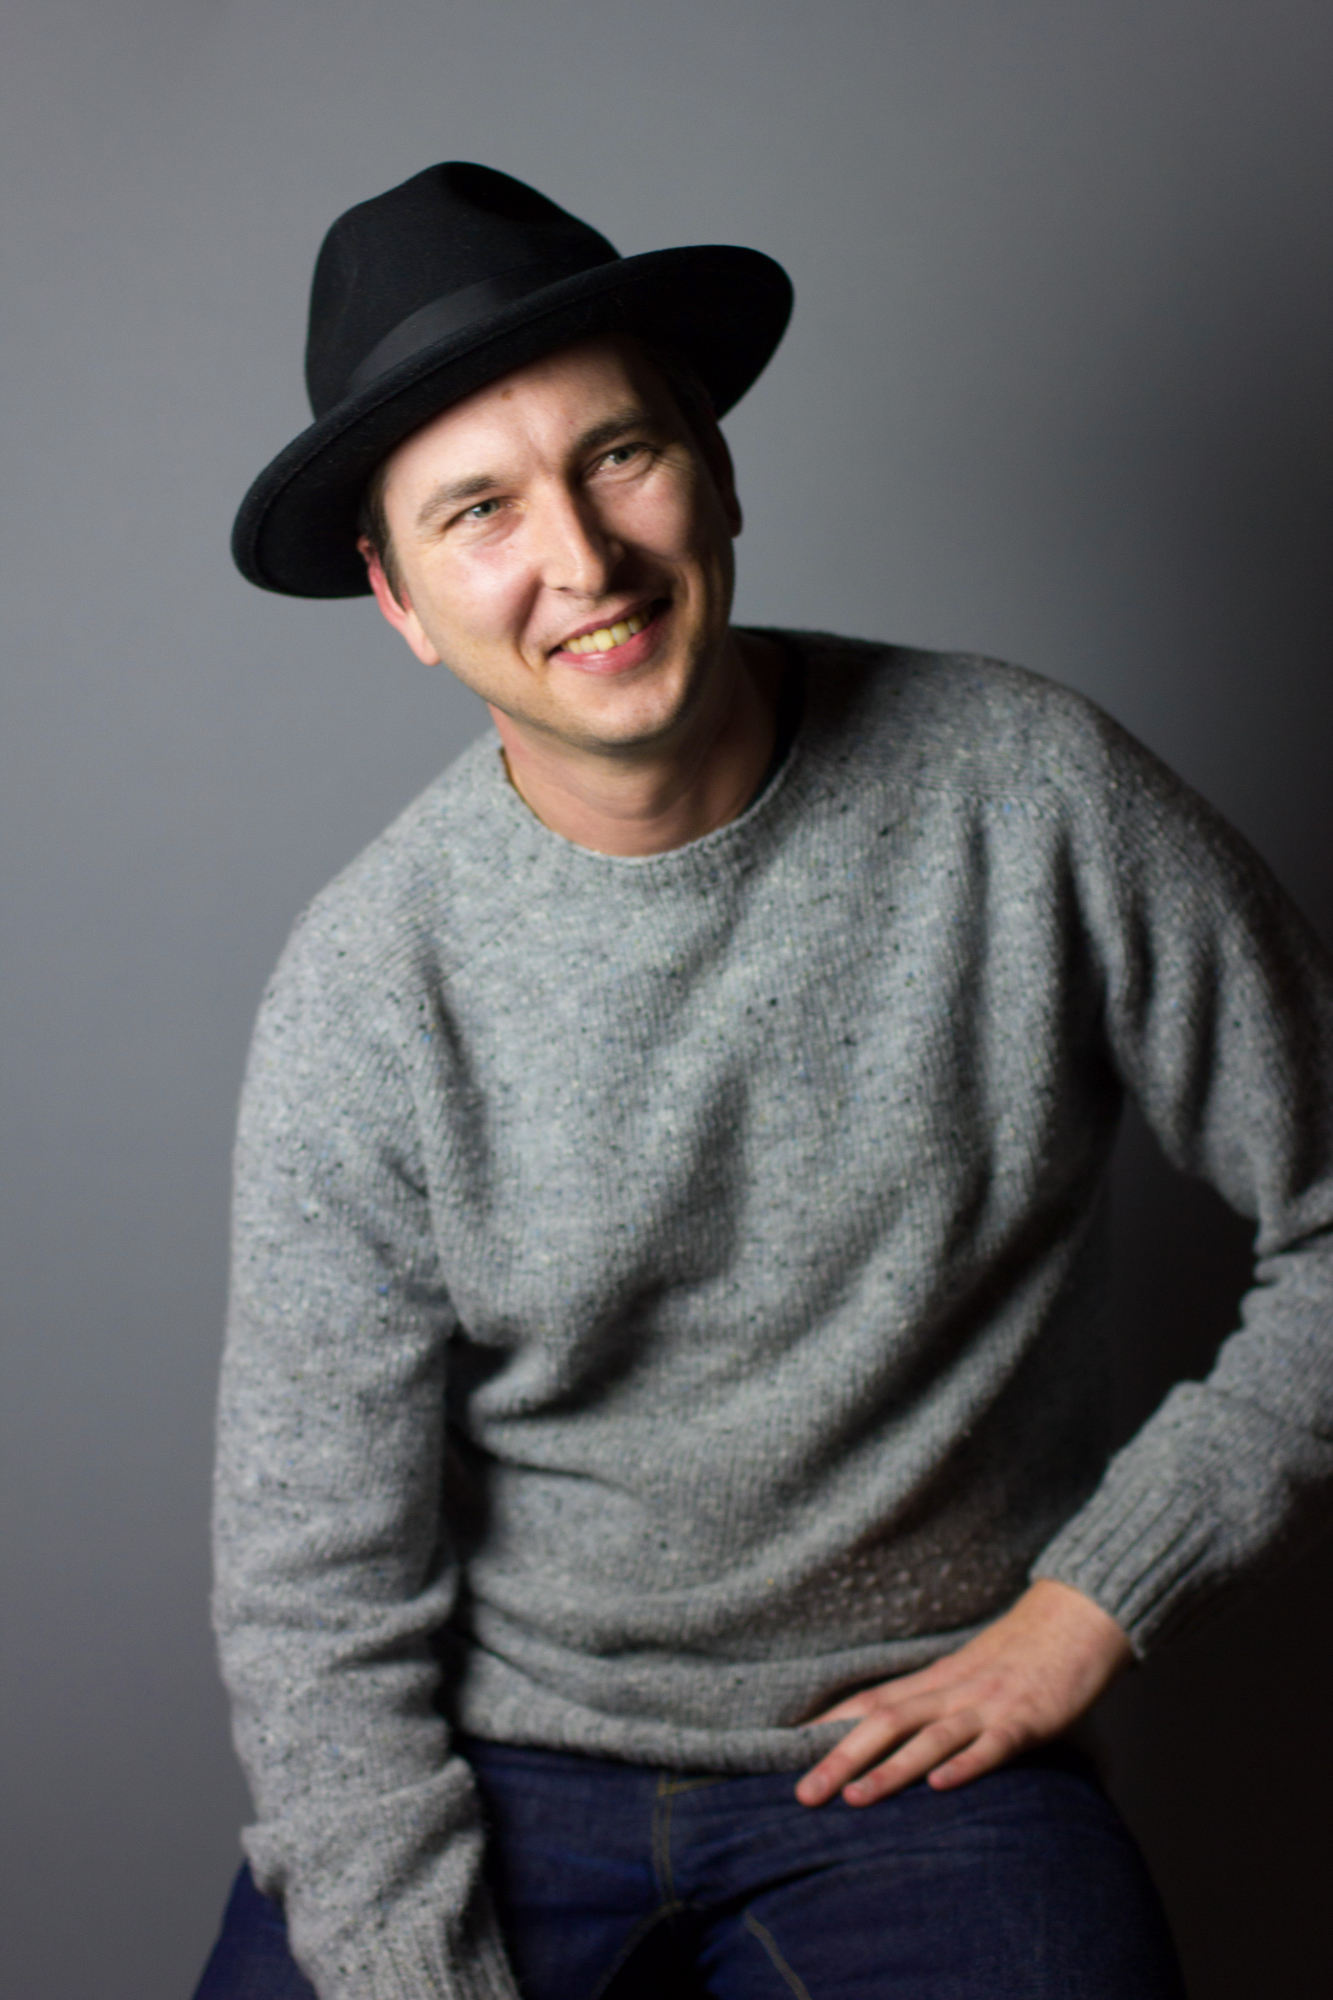 Jason Silen of Goorin Bros Hat Shop Rittenhouse in Brimmed Hats